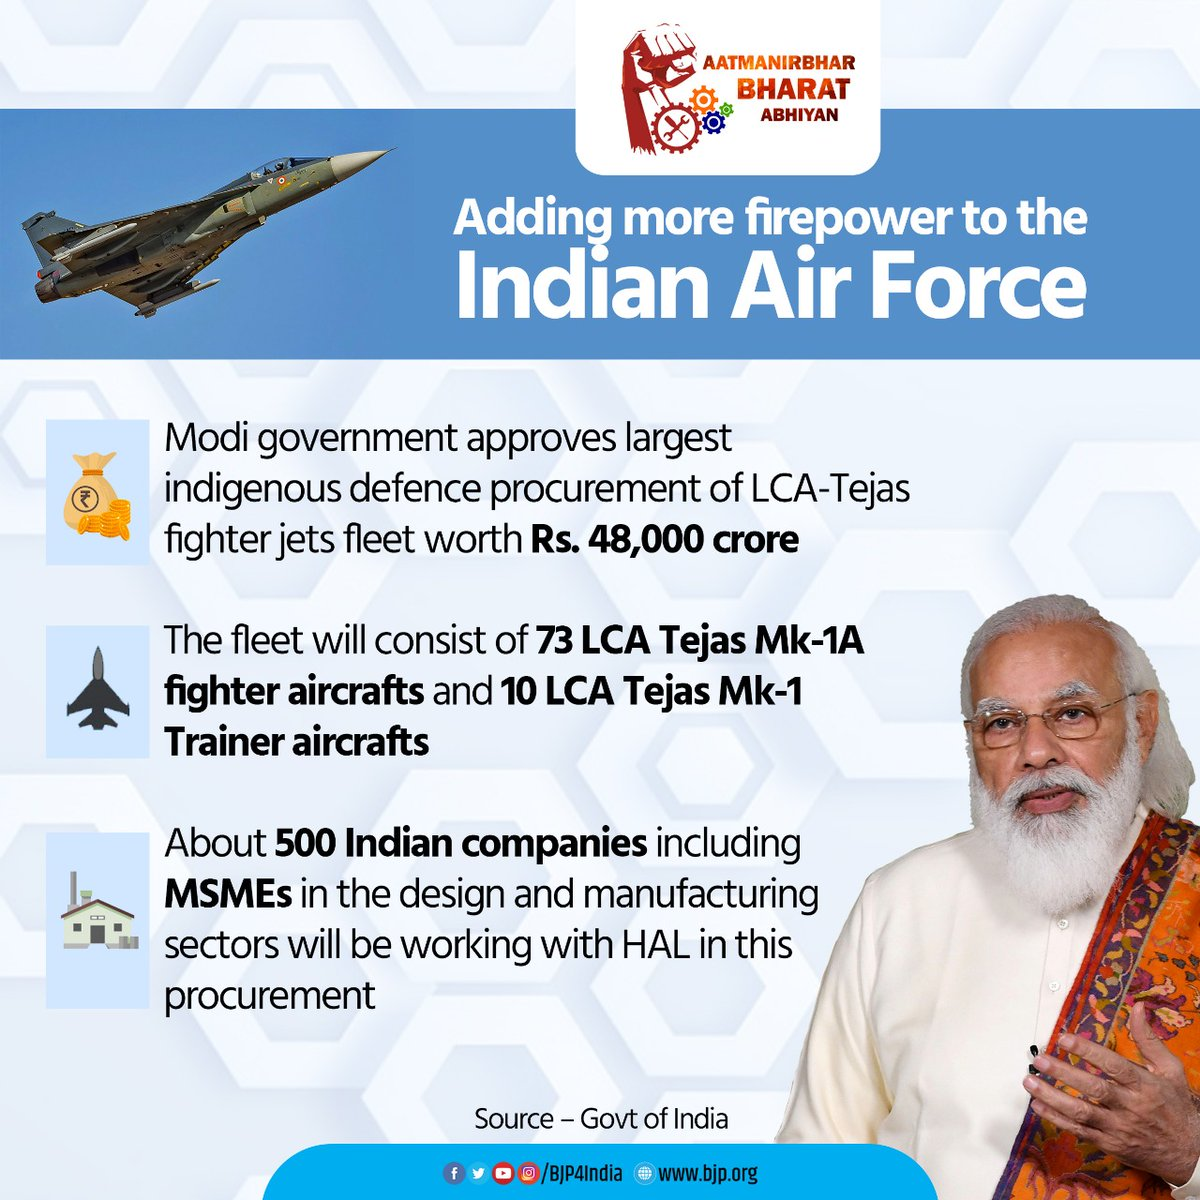 Adding more firepower to the Indian Air Force.  Modi government approves largest indigenous defence procurement of LCA-Tejas fighter jets fleet worth Rs 48,000 crore.  #AatmanirbharBharat #MakeInIndia